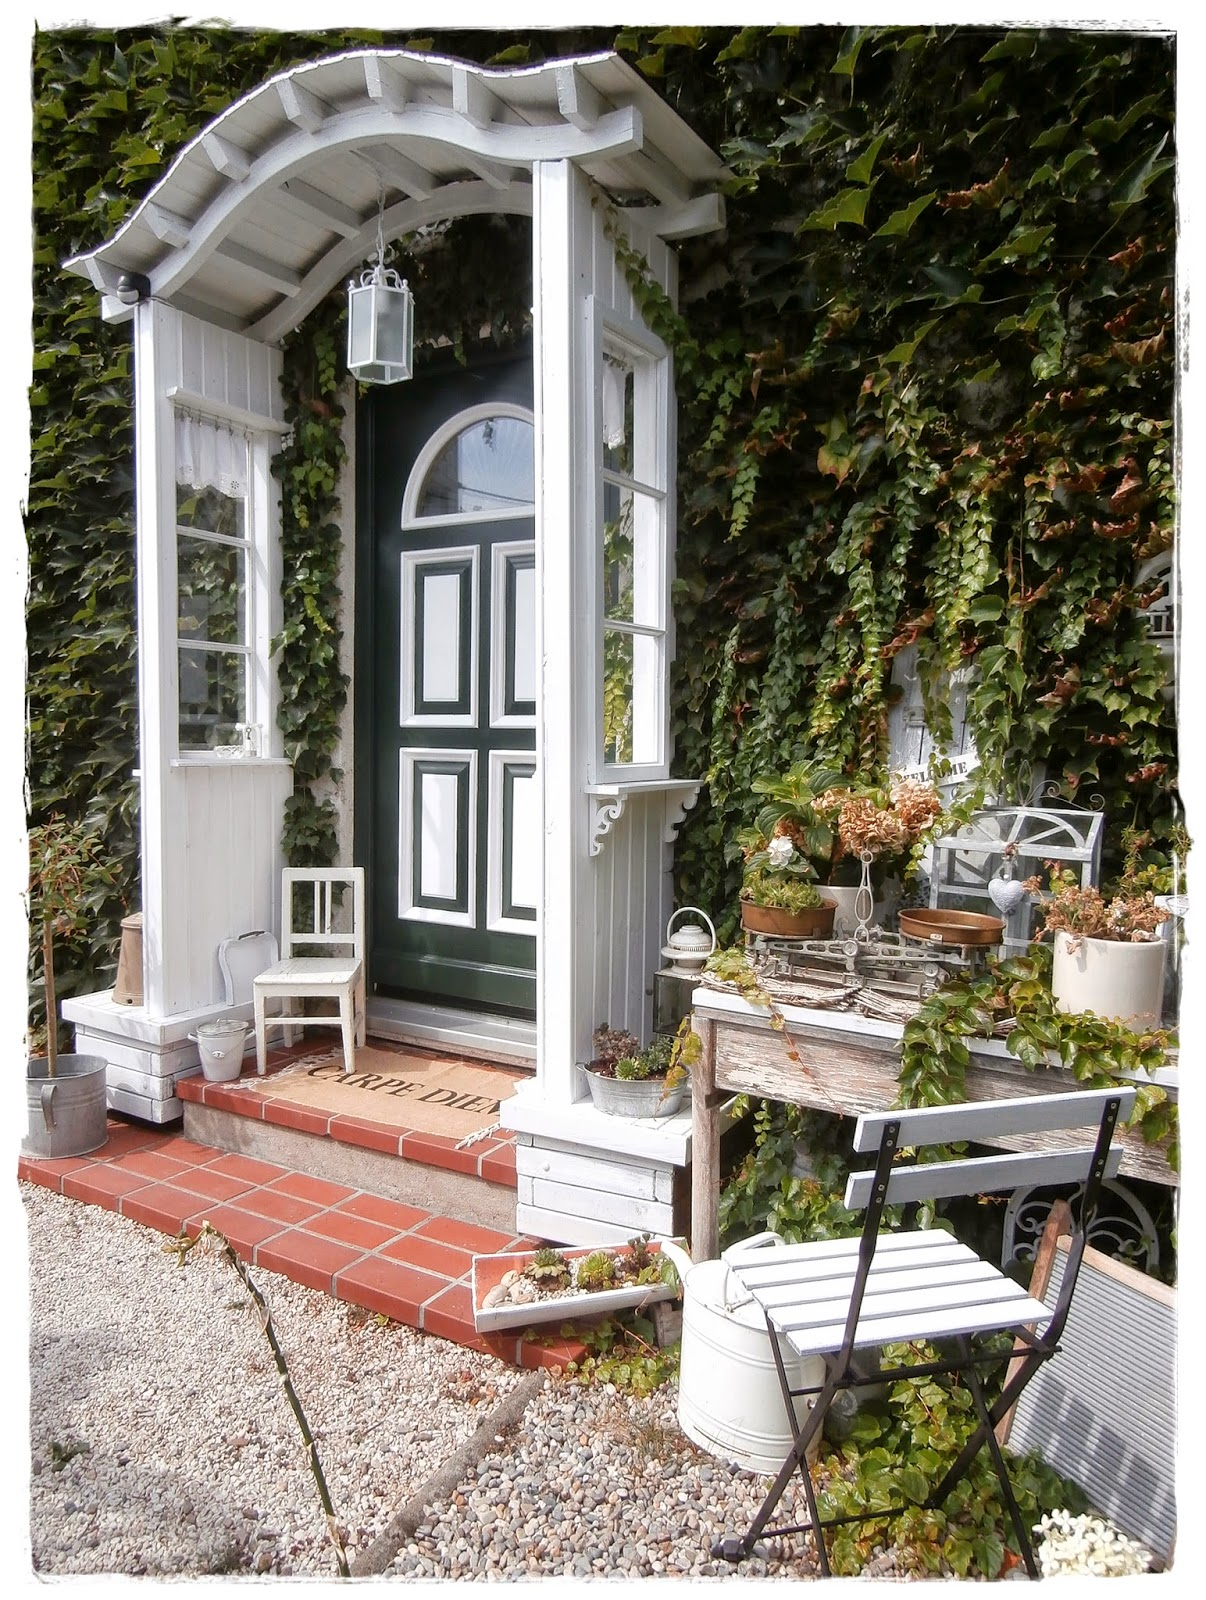 Shabby and charme una romantica casa shabby chic style in centro a vienna - Shabby and charme ...